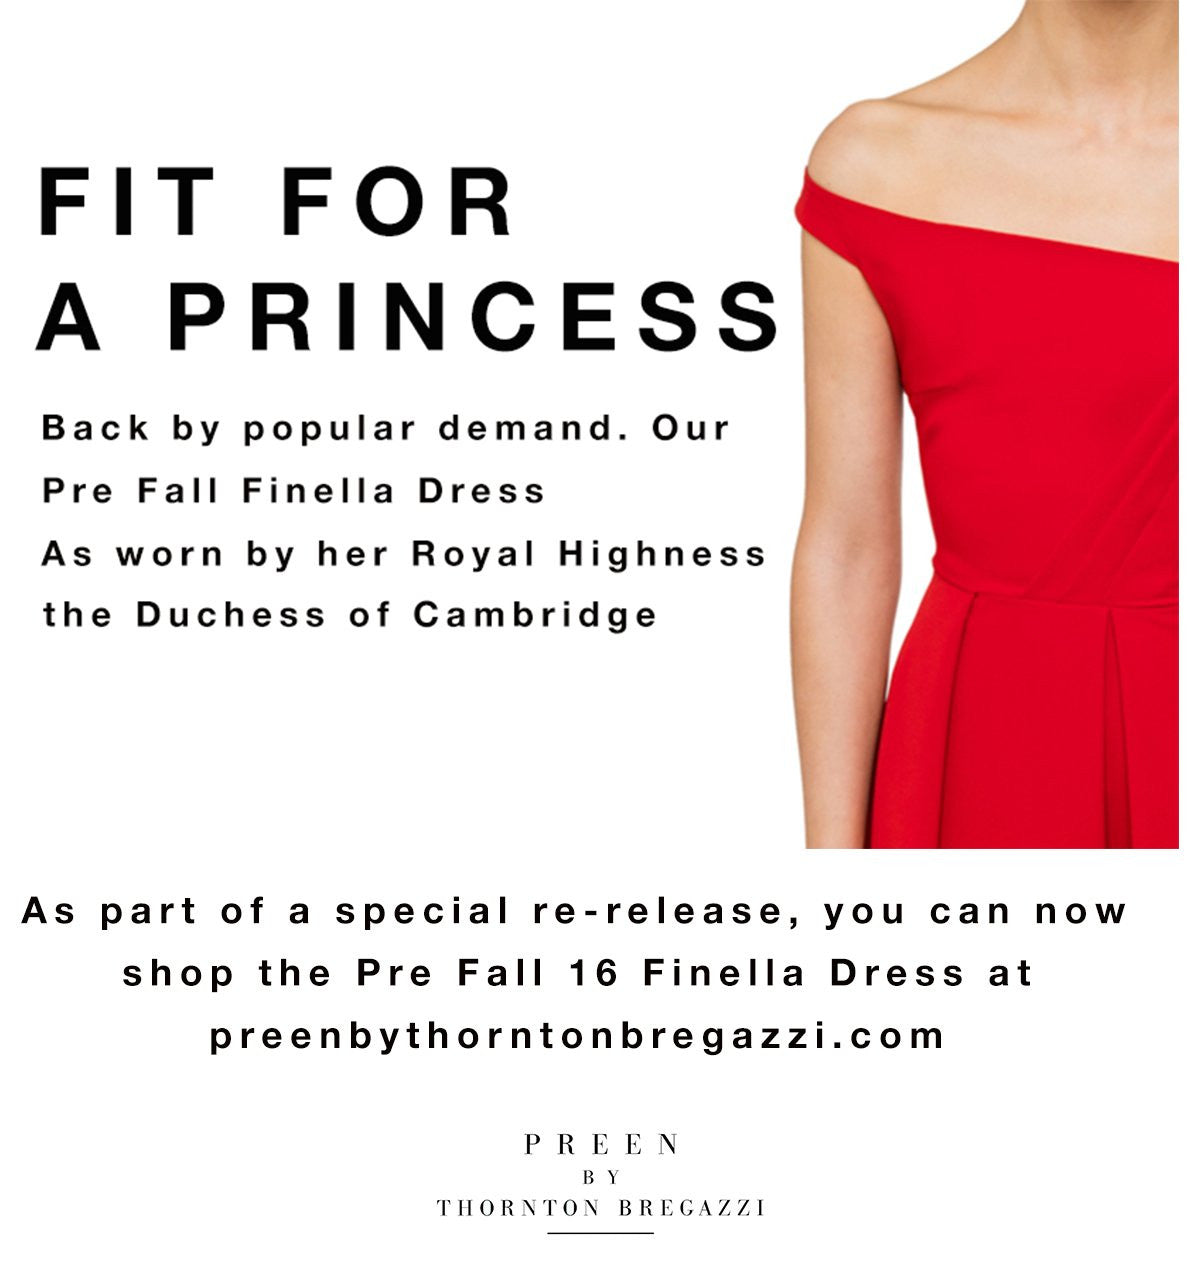 Fit for a princess - the Finella dress worn by Kate Middleton